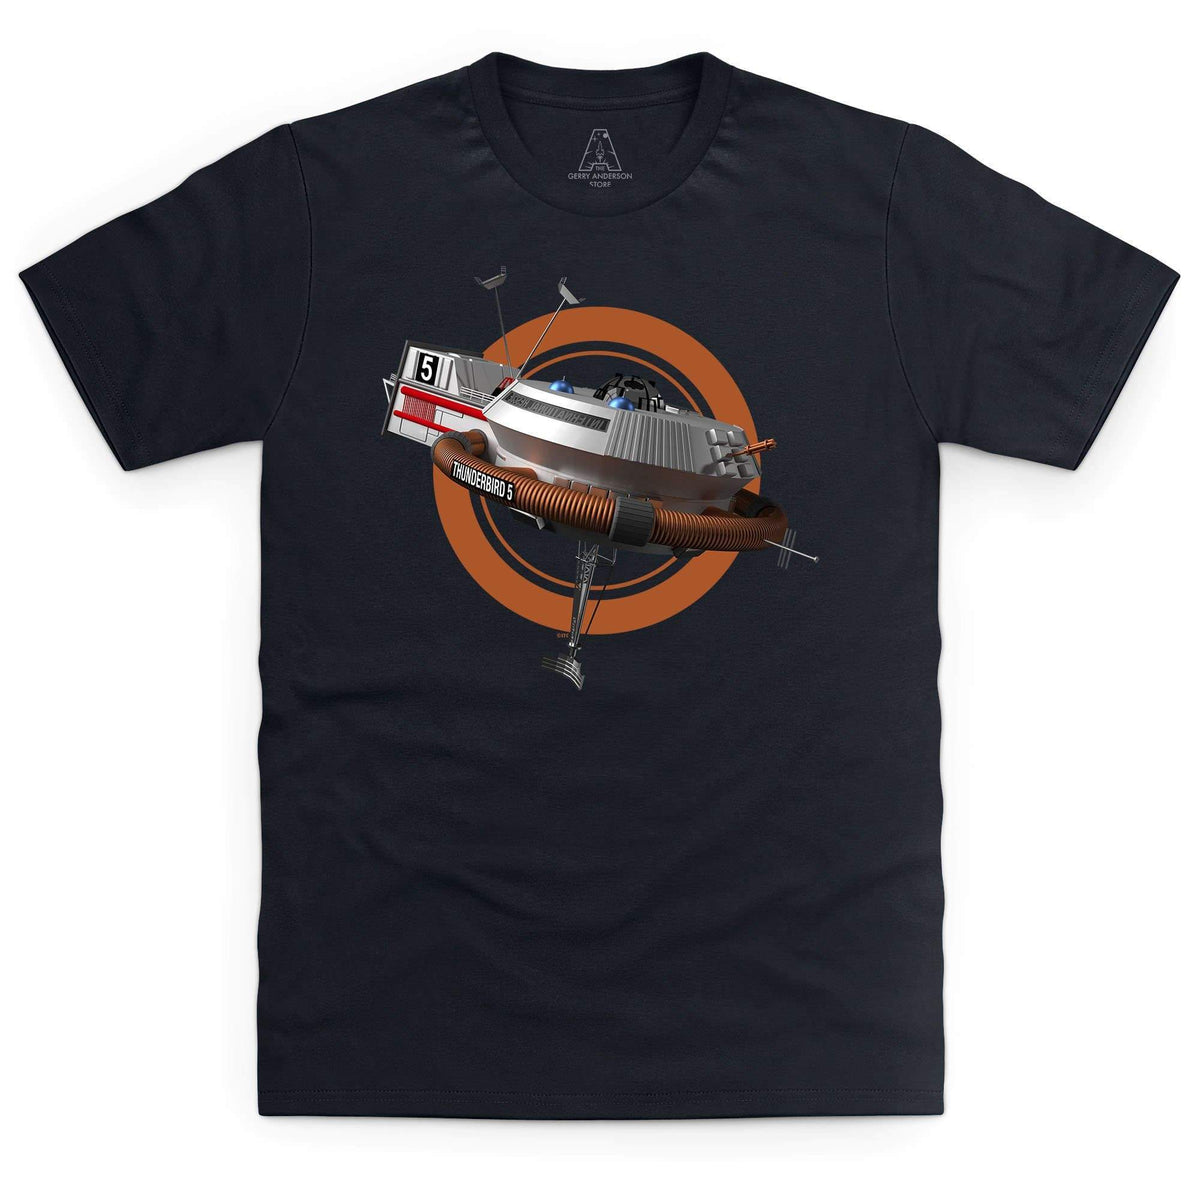 Thunderbird 5 T-Shirt [Official & Exclusive] - The Gerry Anderson Store